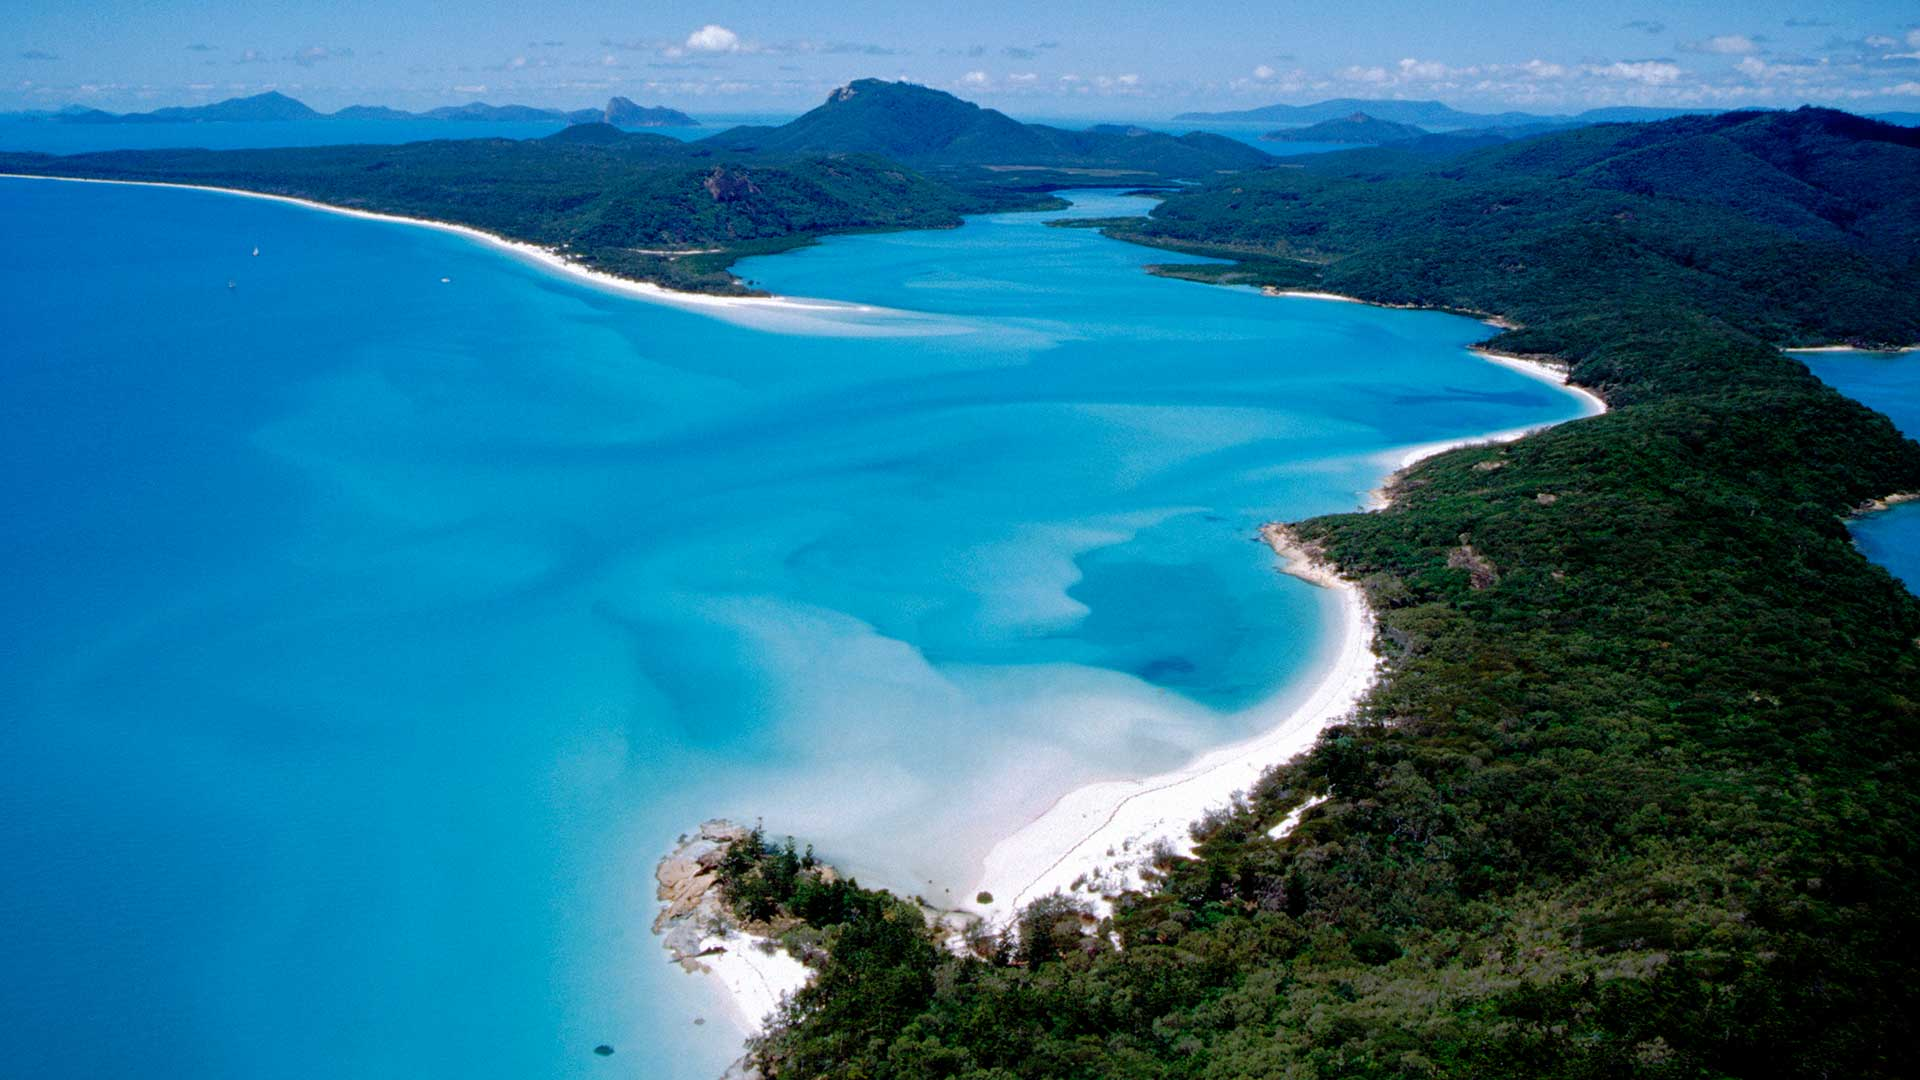 The Whitsunday Islands, National Park. Hill Inlet from the air, part of the Great Barrier Reef